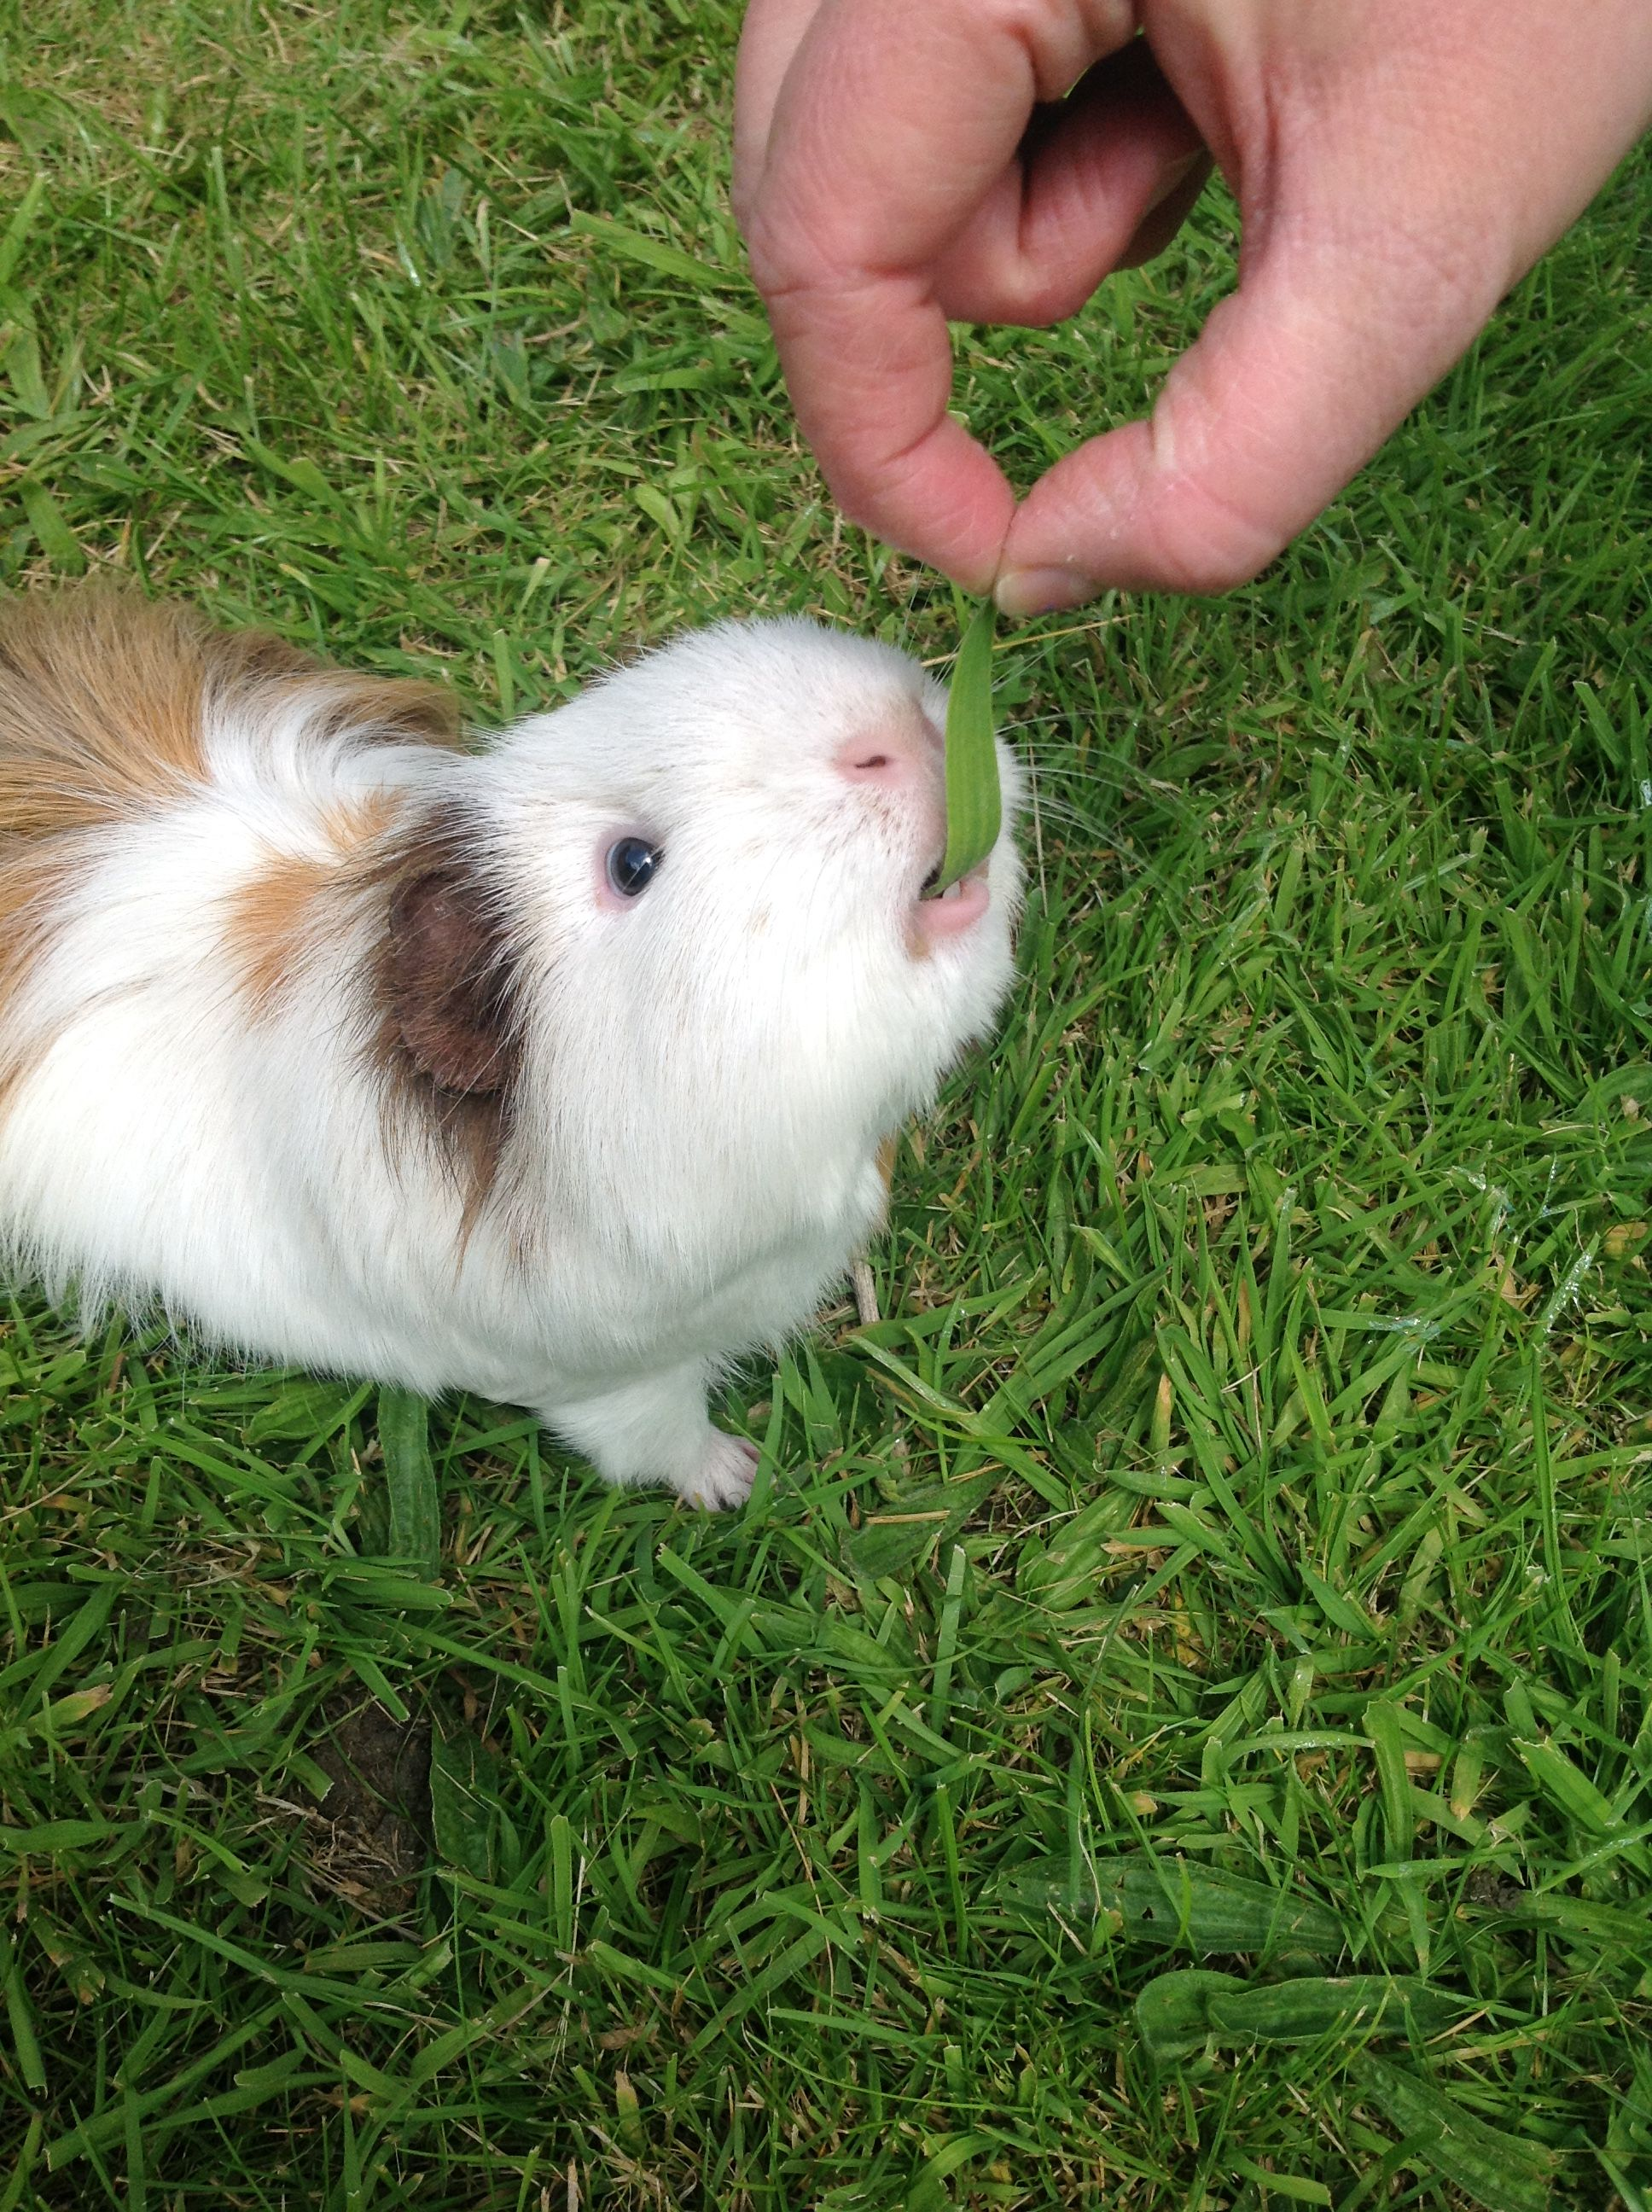 This is our guinea pig, he's called Rodney and about 5 years old